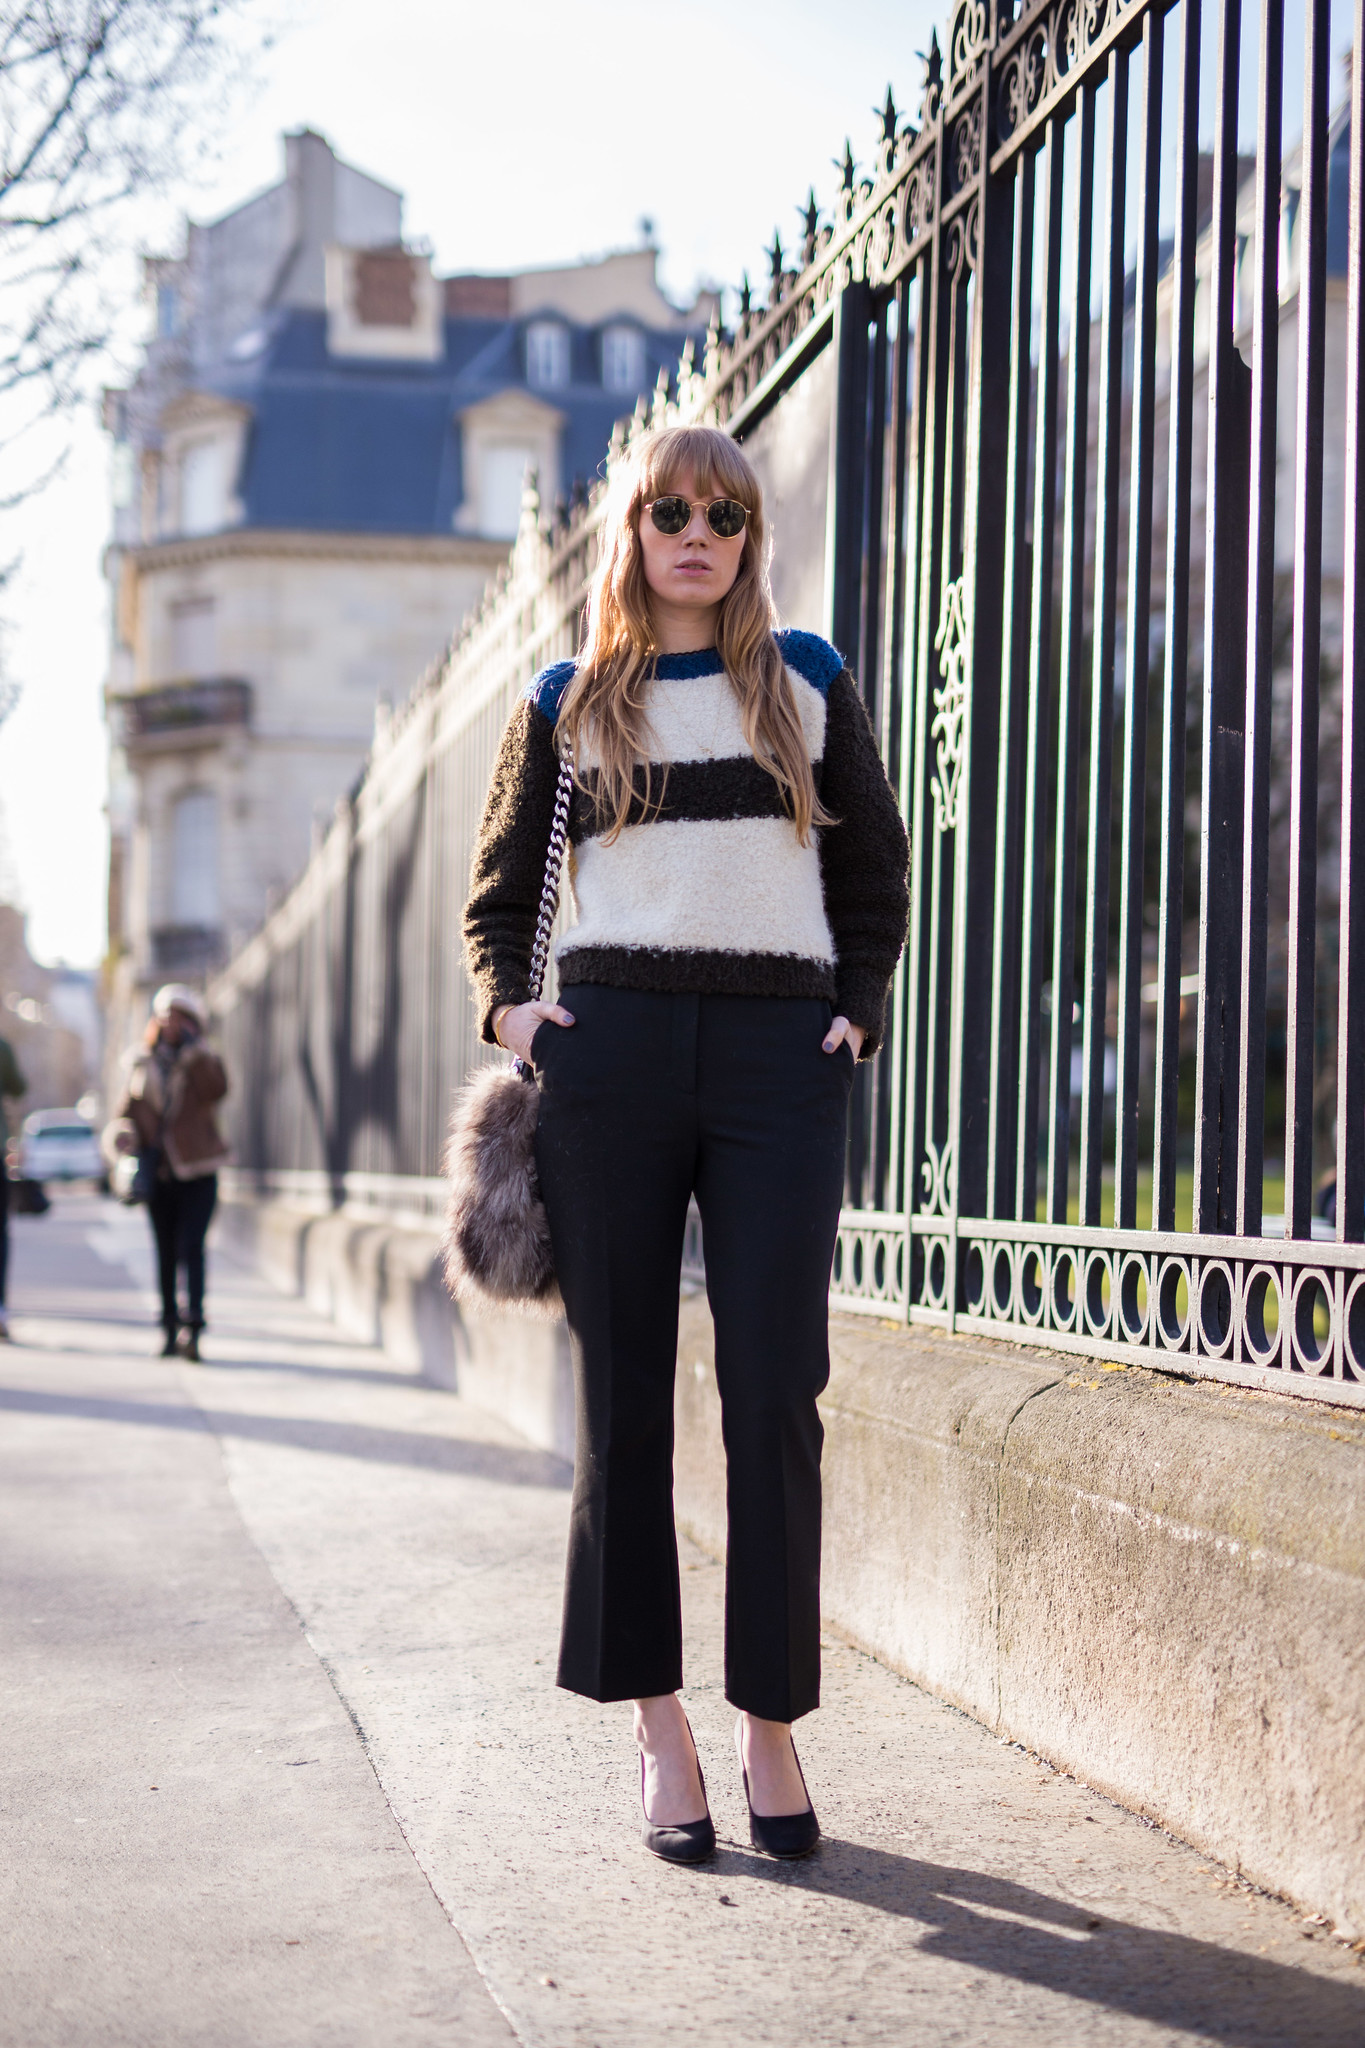 Street Style - Fiona Jane, Paris Fashion Week